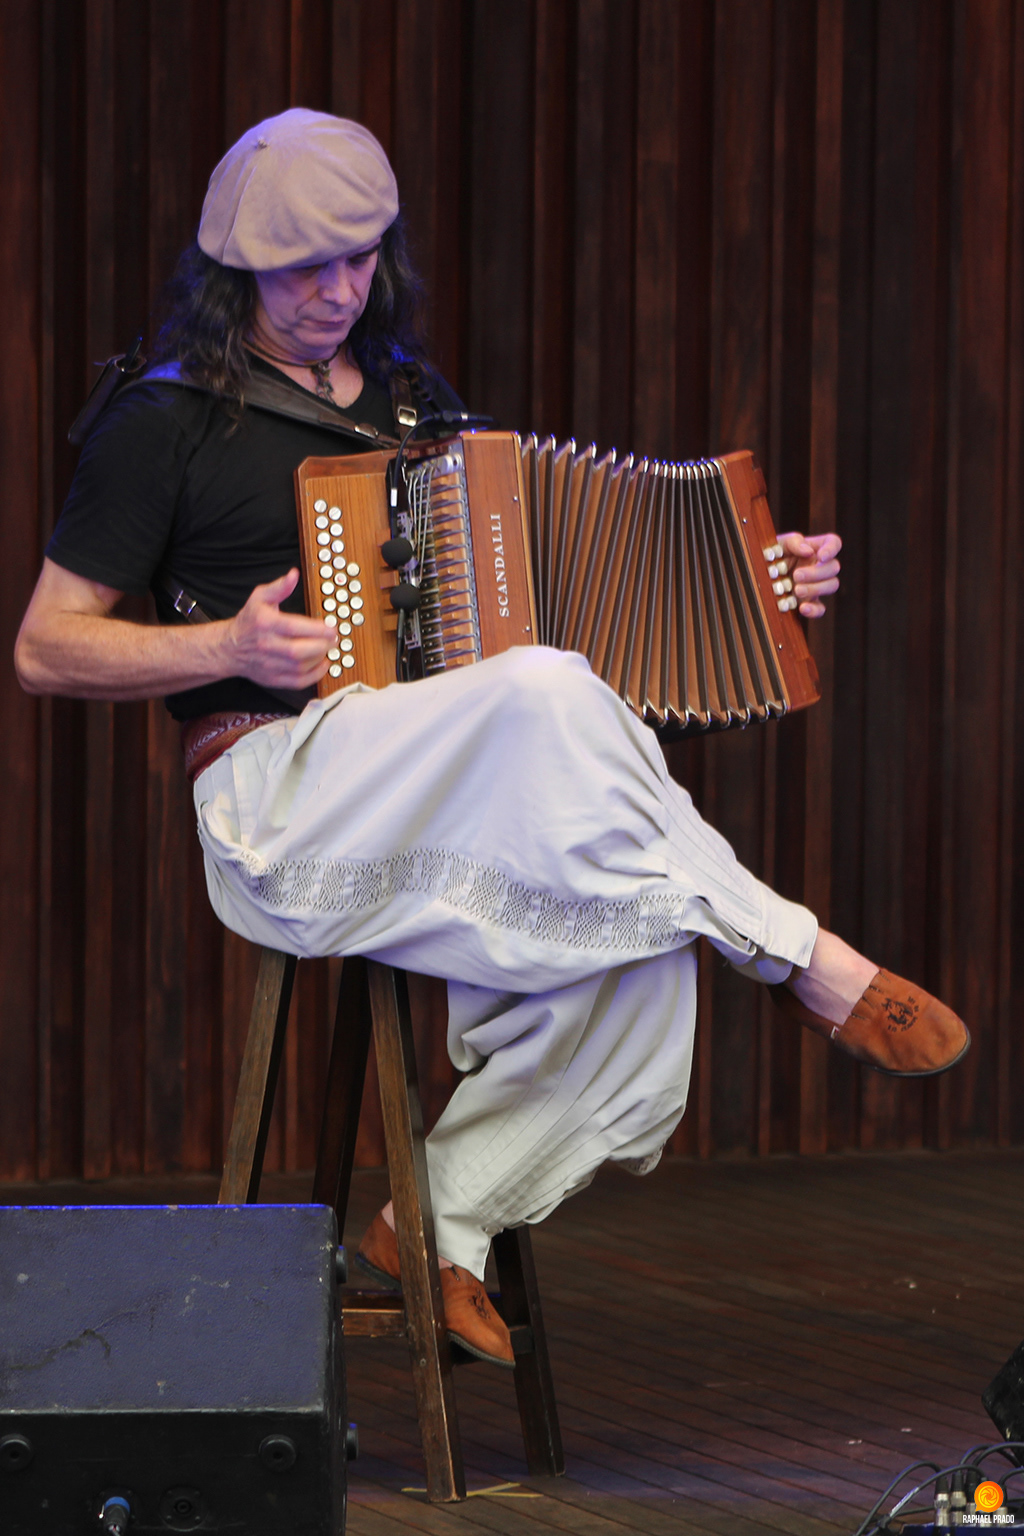 Image may contain: person, musical instrument and accordion